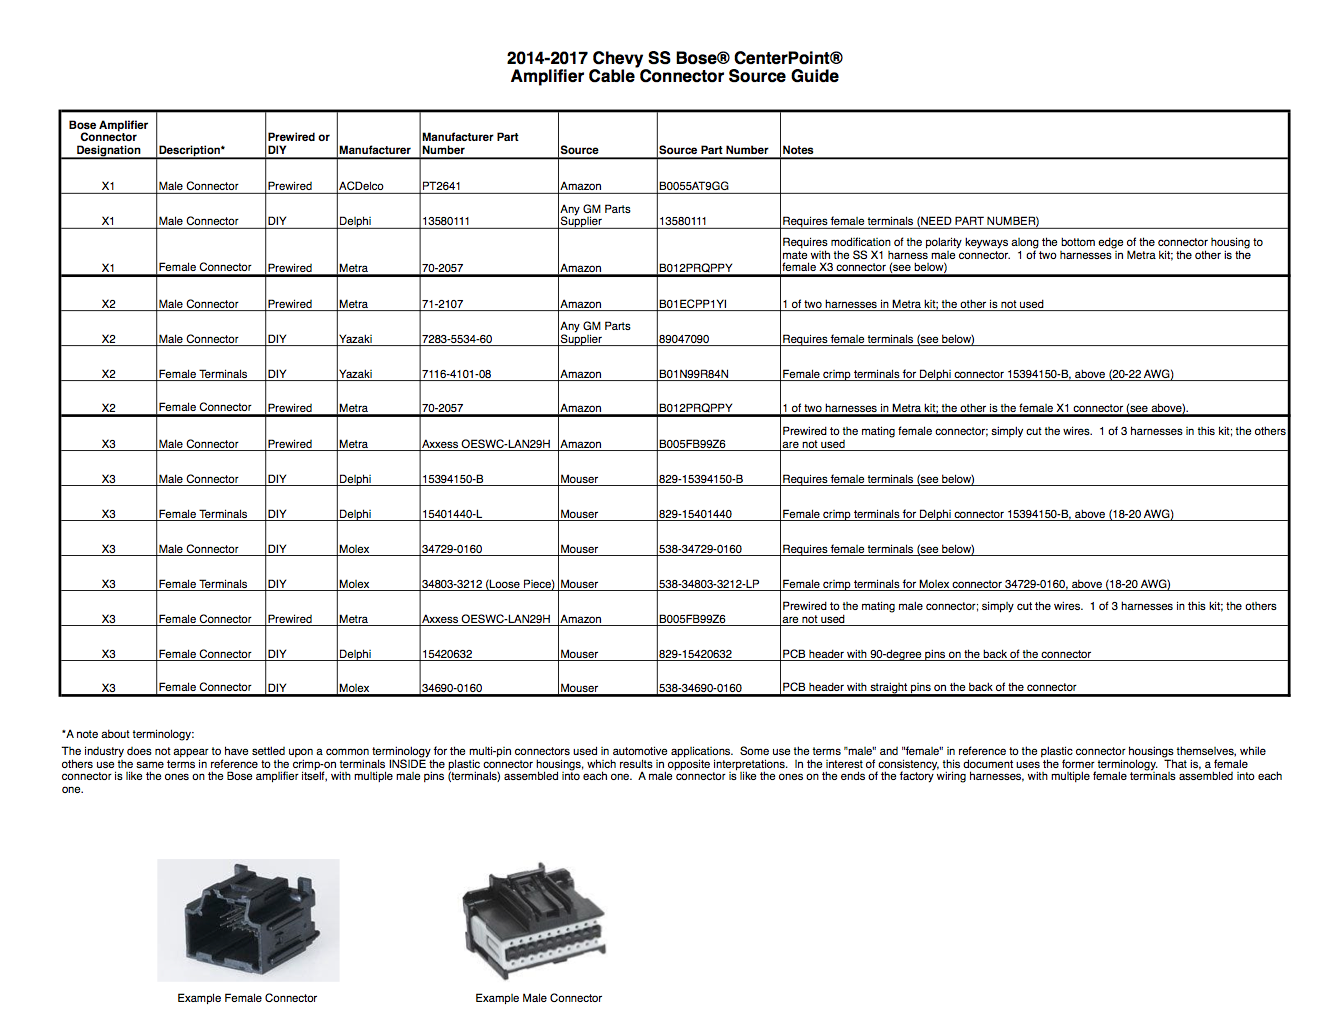 5600 Bose Amp Wiring Diagram 28 Images Sub Chevy Ss Amplifier Connector Source Guide Details Page 3 Forum